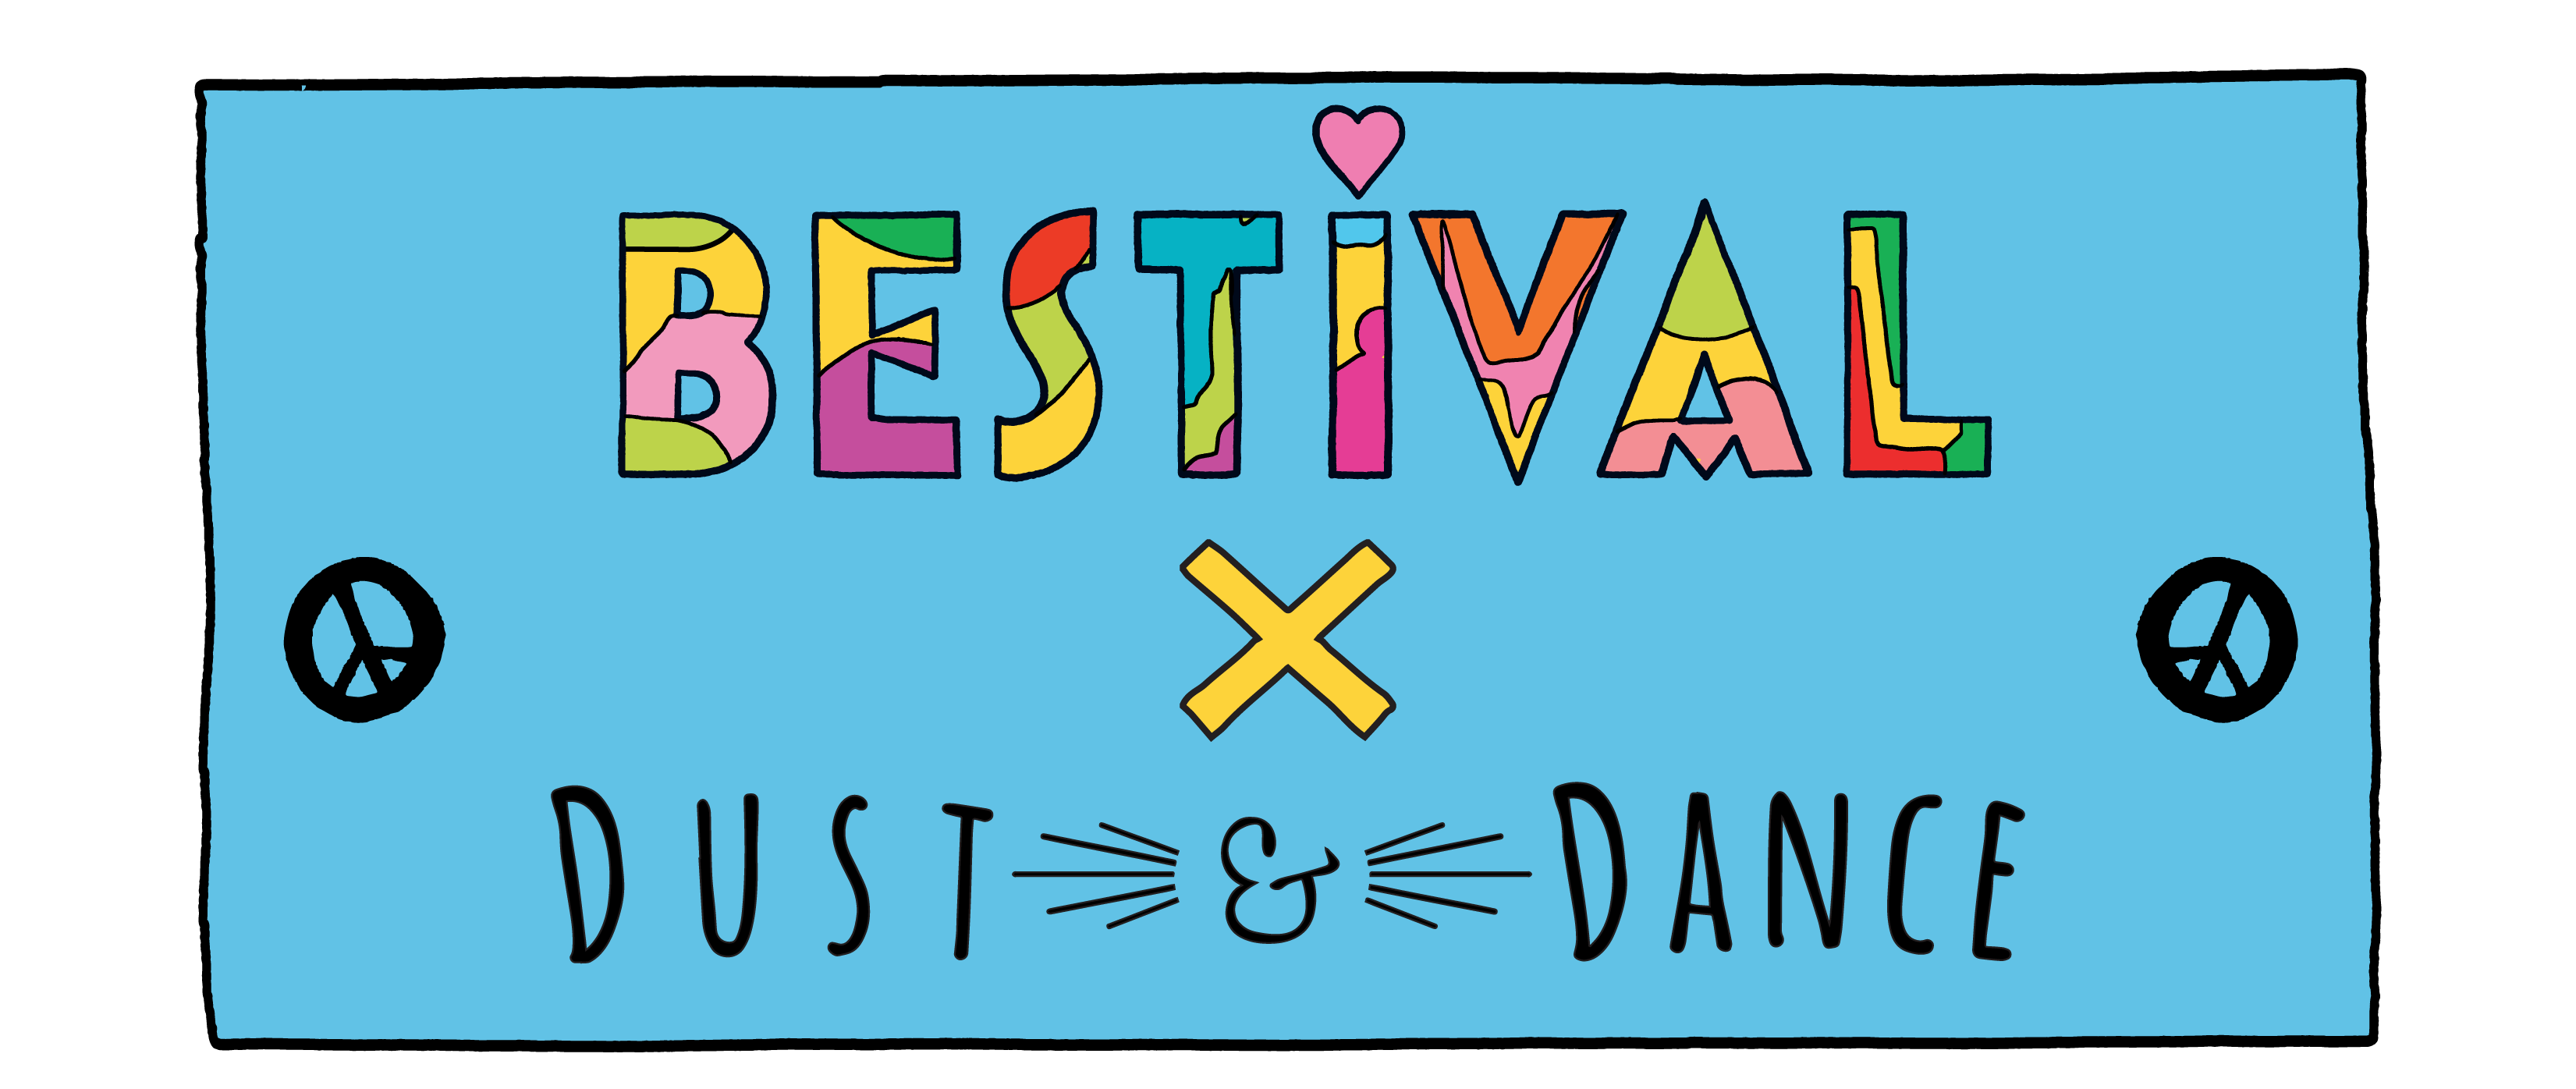 Bestival x Dust and Dance blue stamp logo